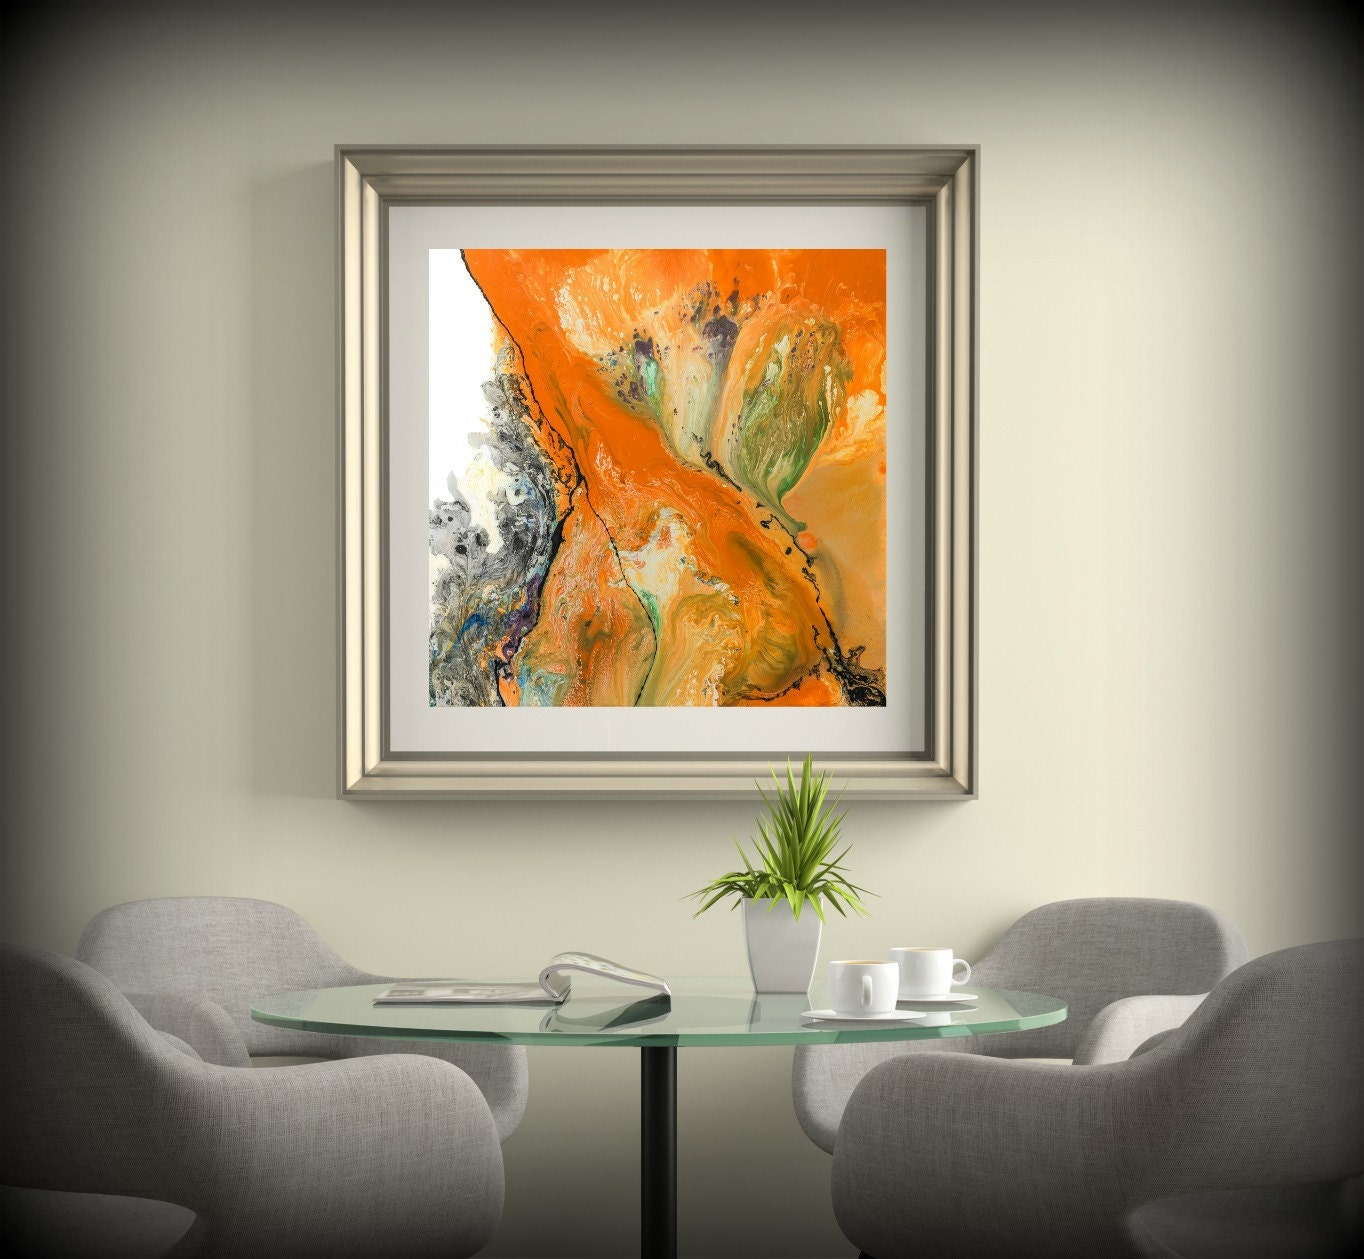 Living room decor square wall decor orange wall art dining for Room decor wall art